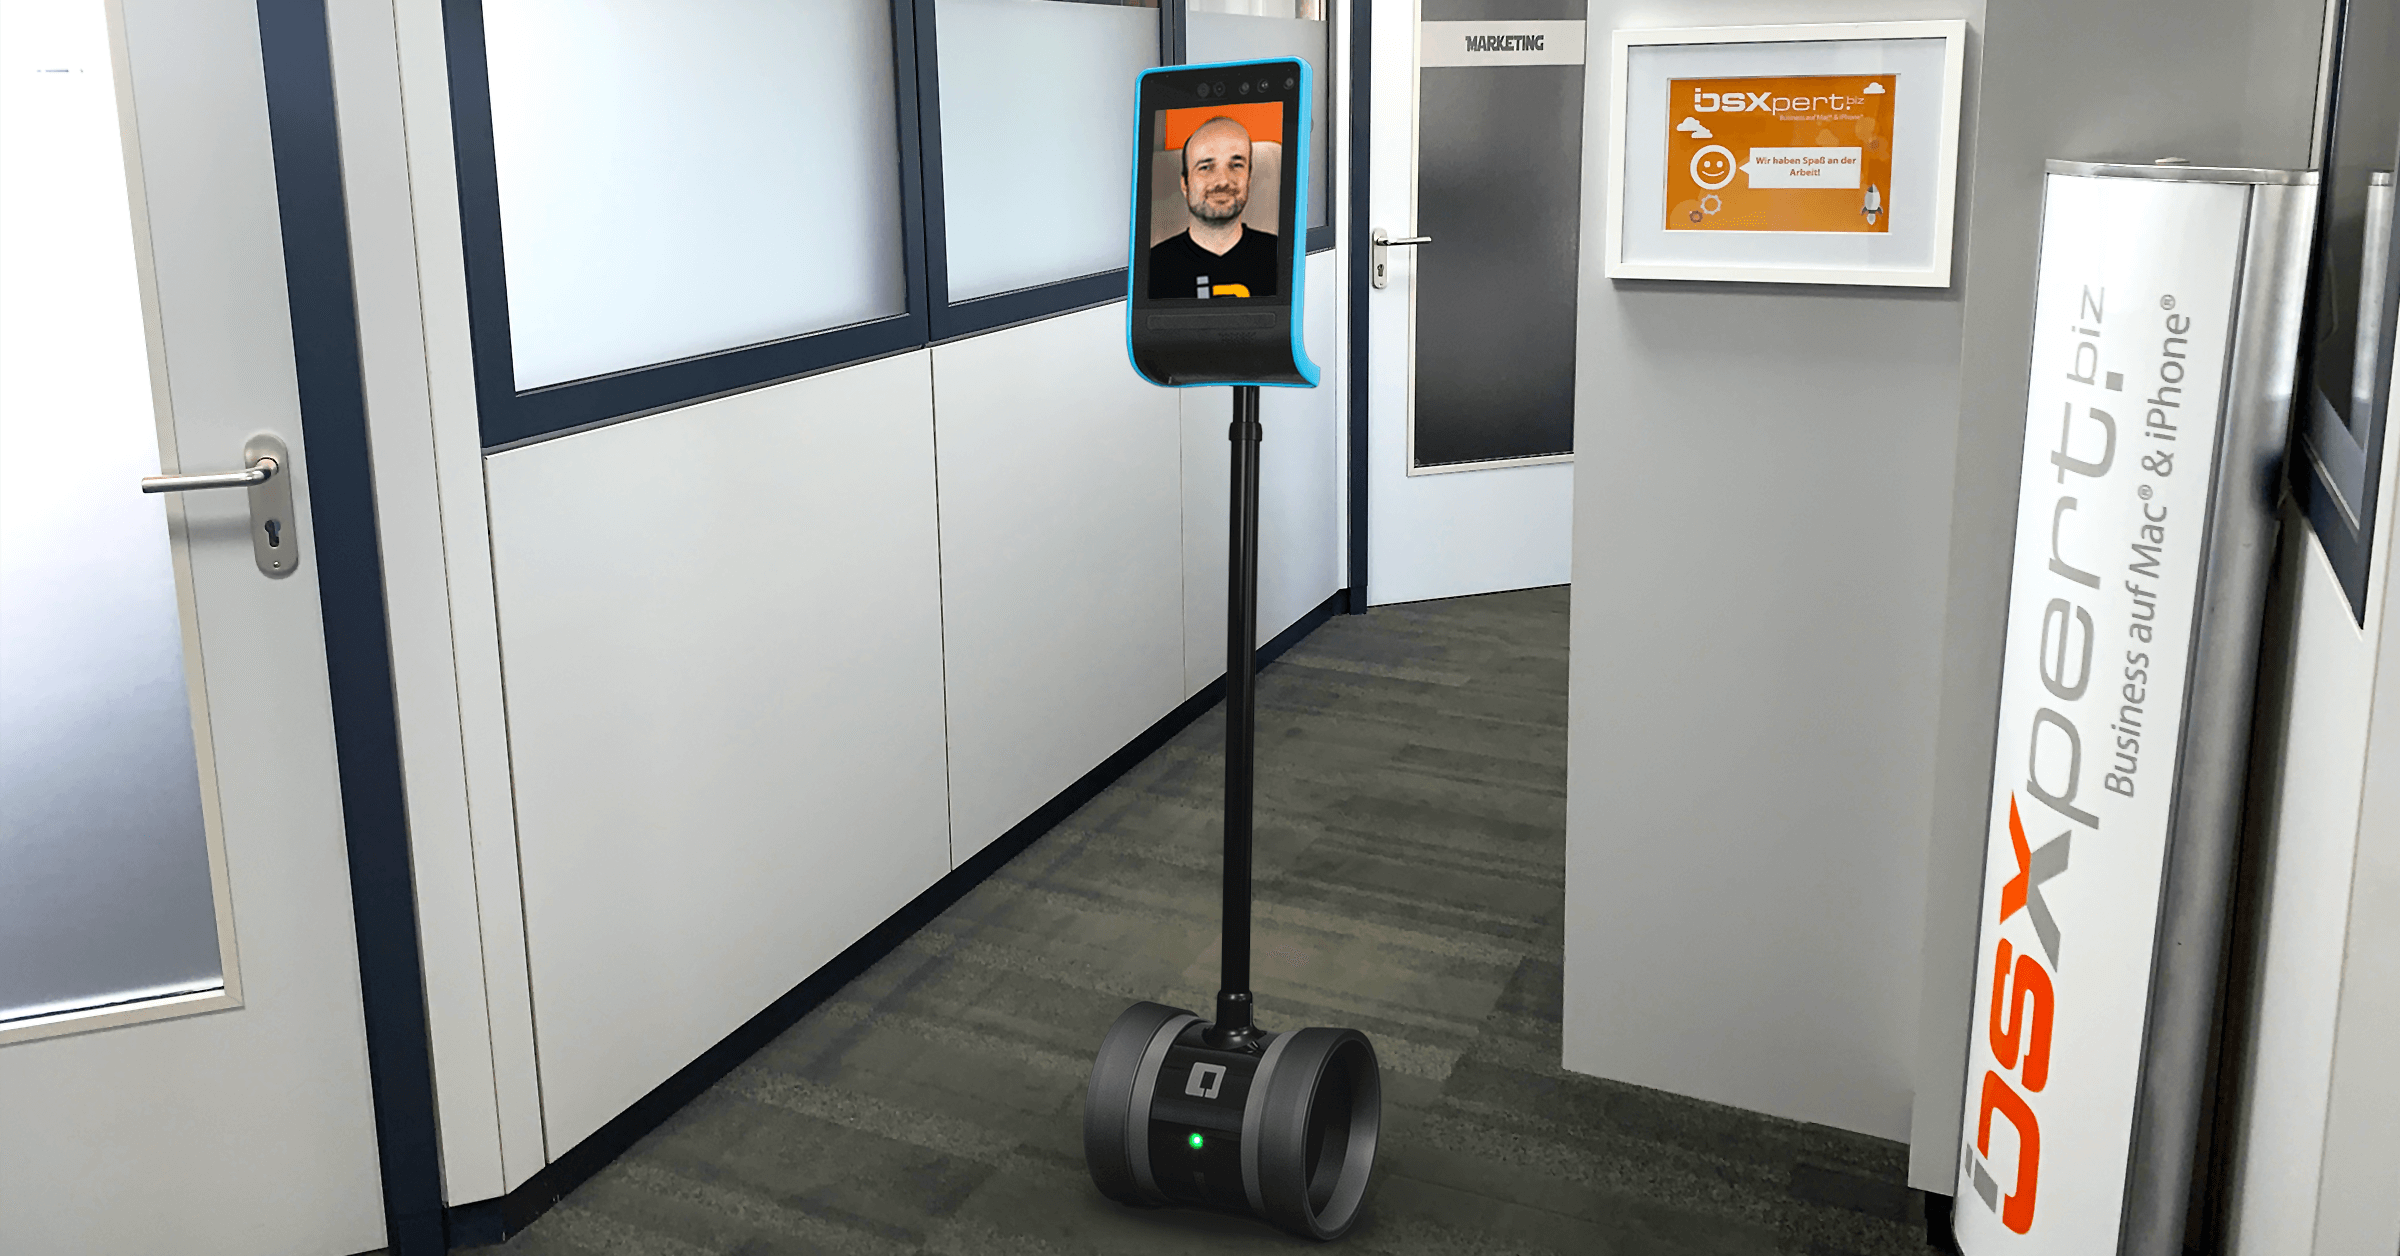 Our Series on Remote Working: Double Robotics Telepresence Robot